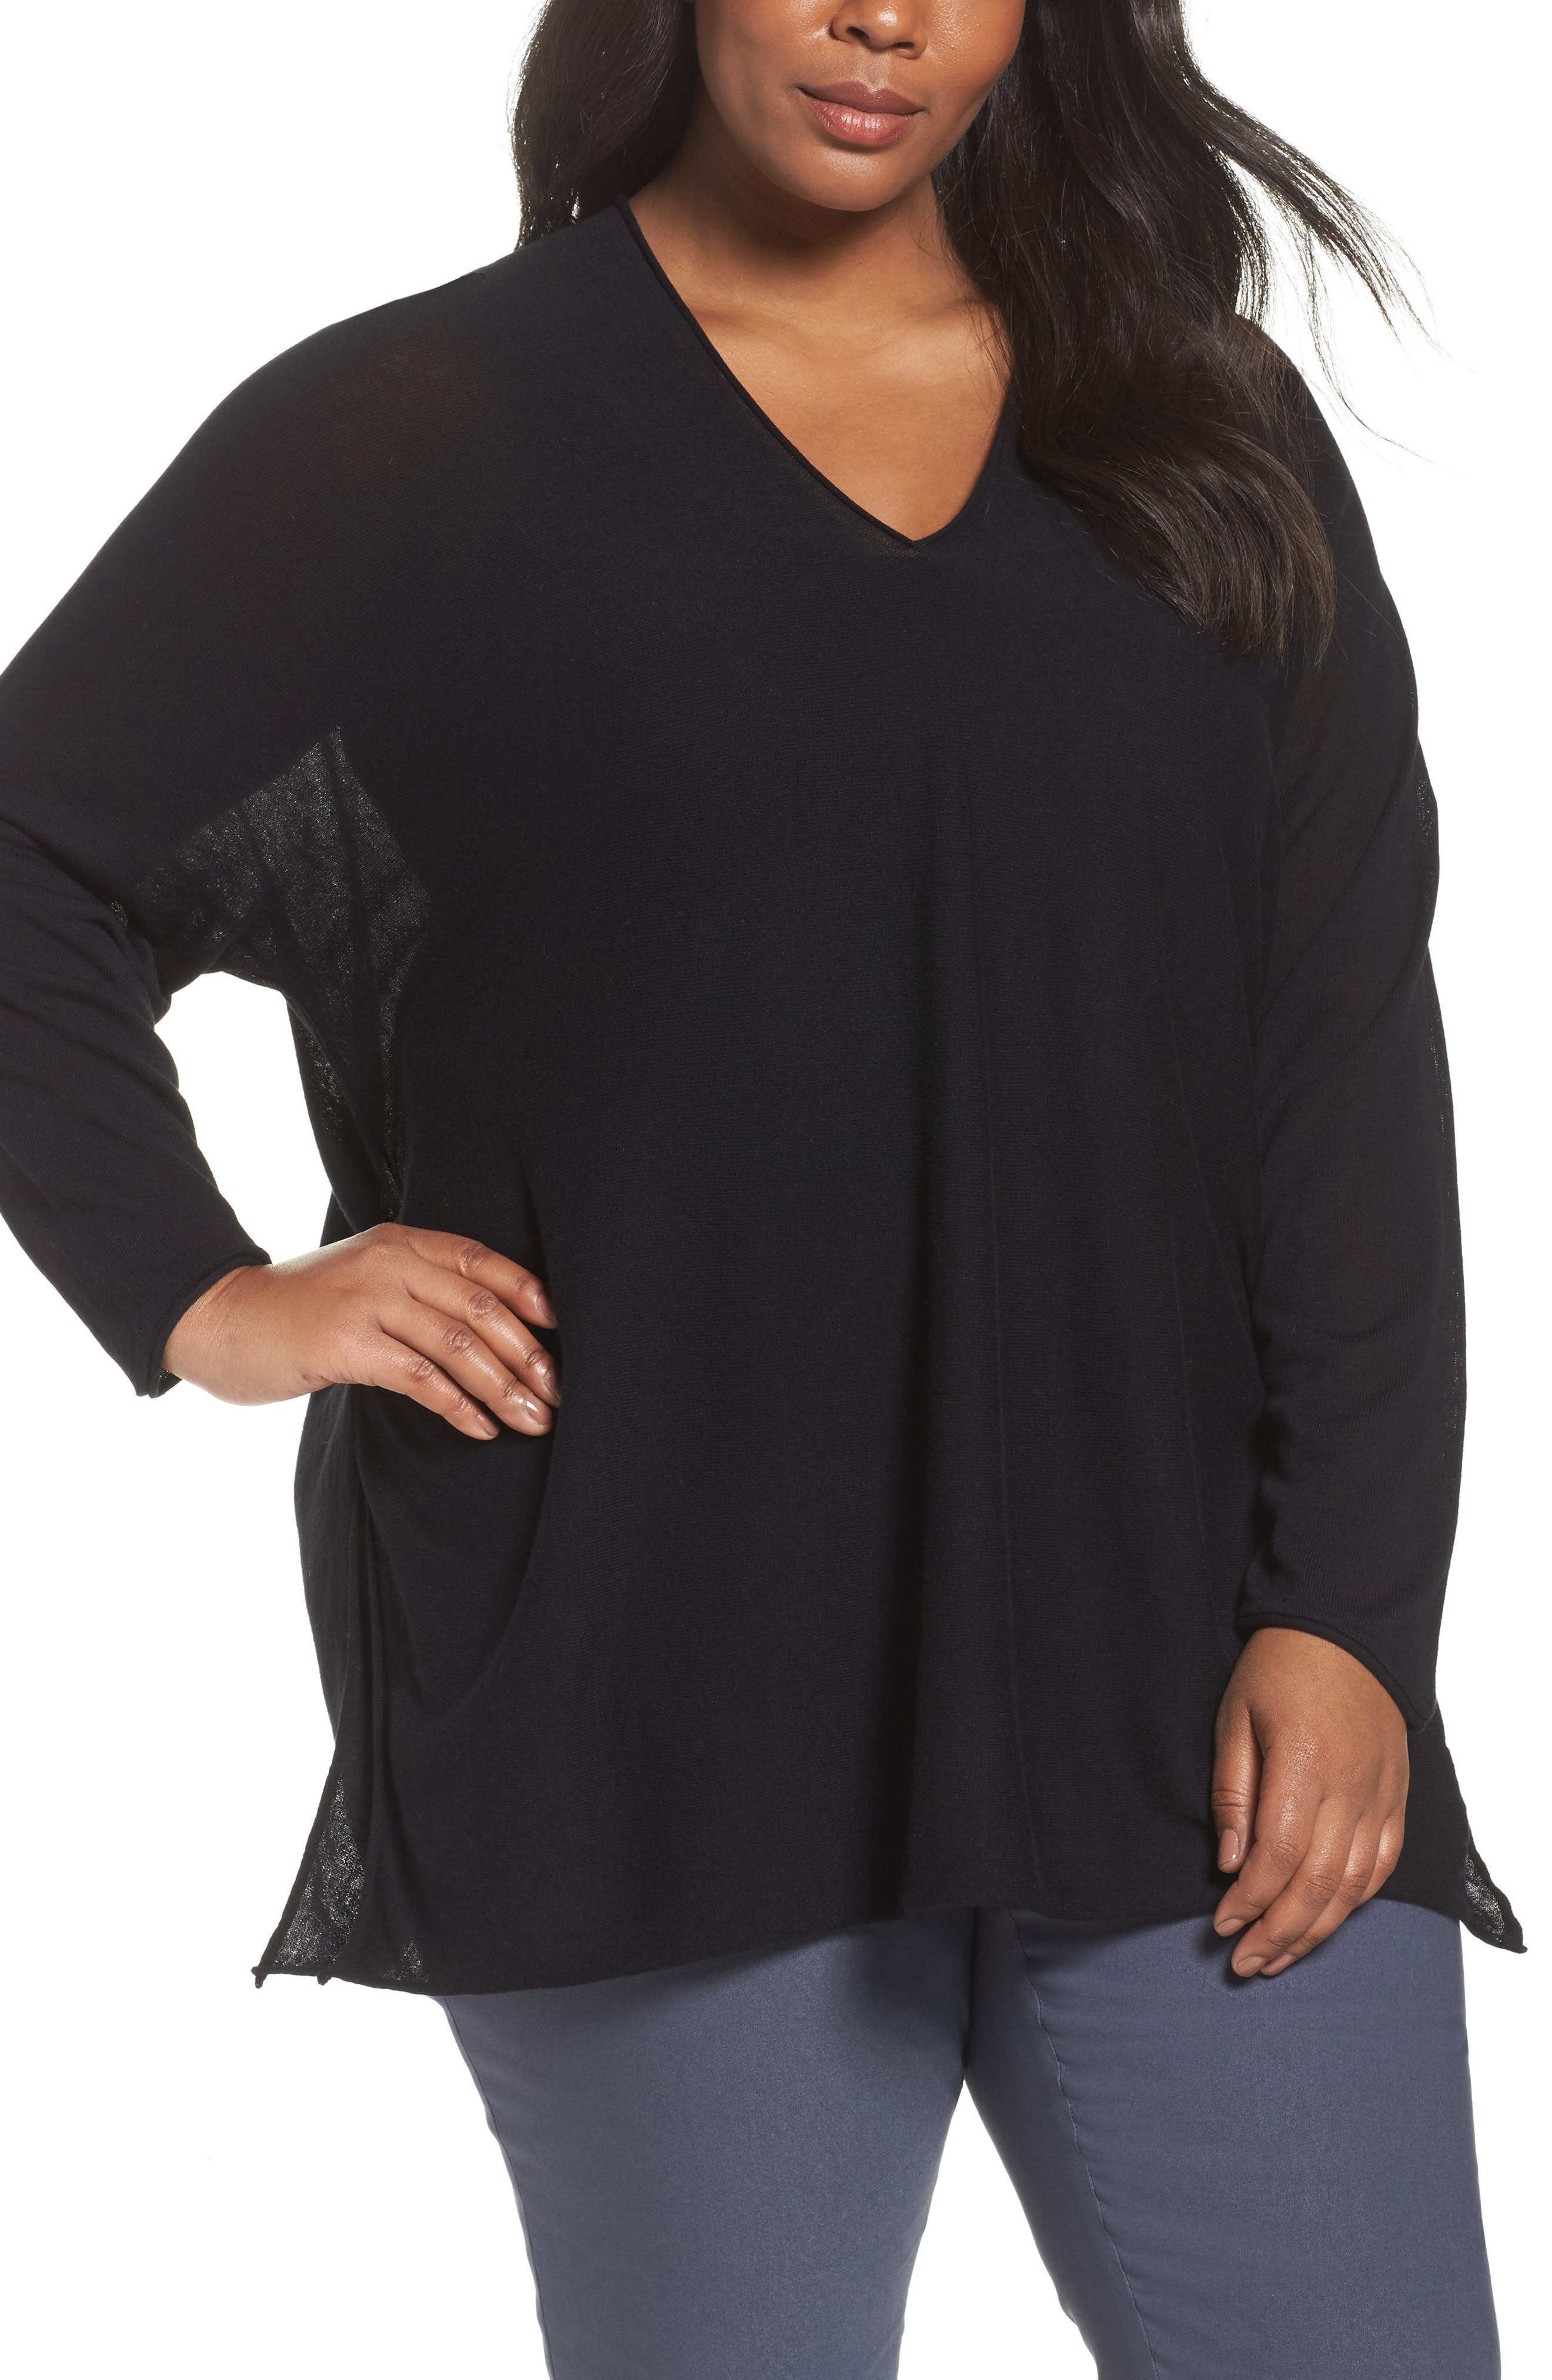 NIC + ZOE Dolman Sleeve Side Tie Top,                             Main thumbnail 1, color,